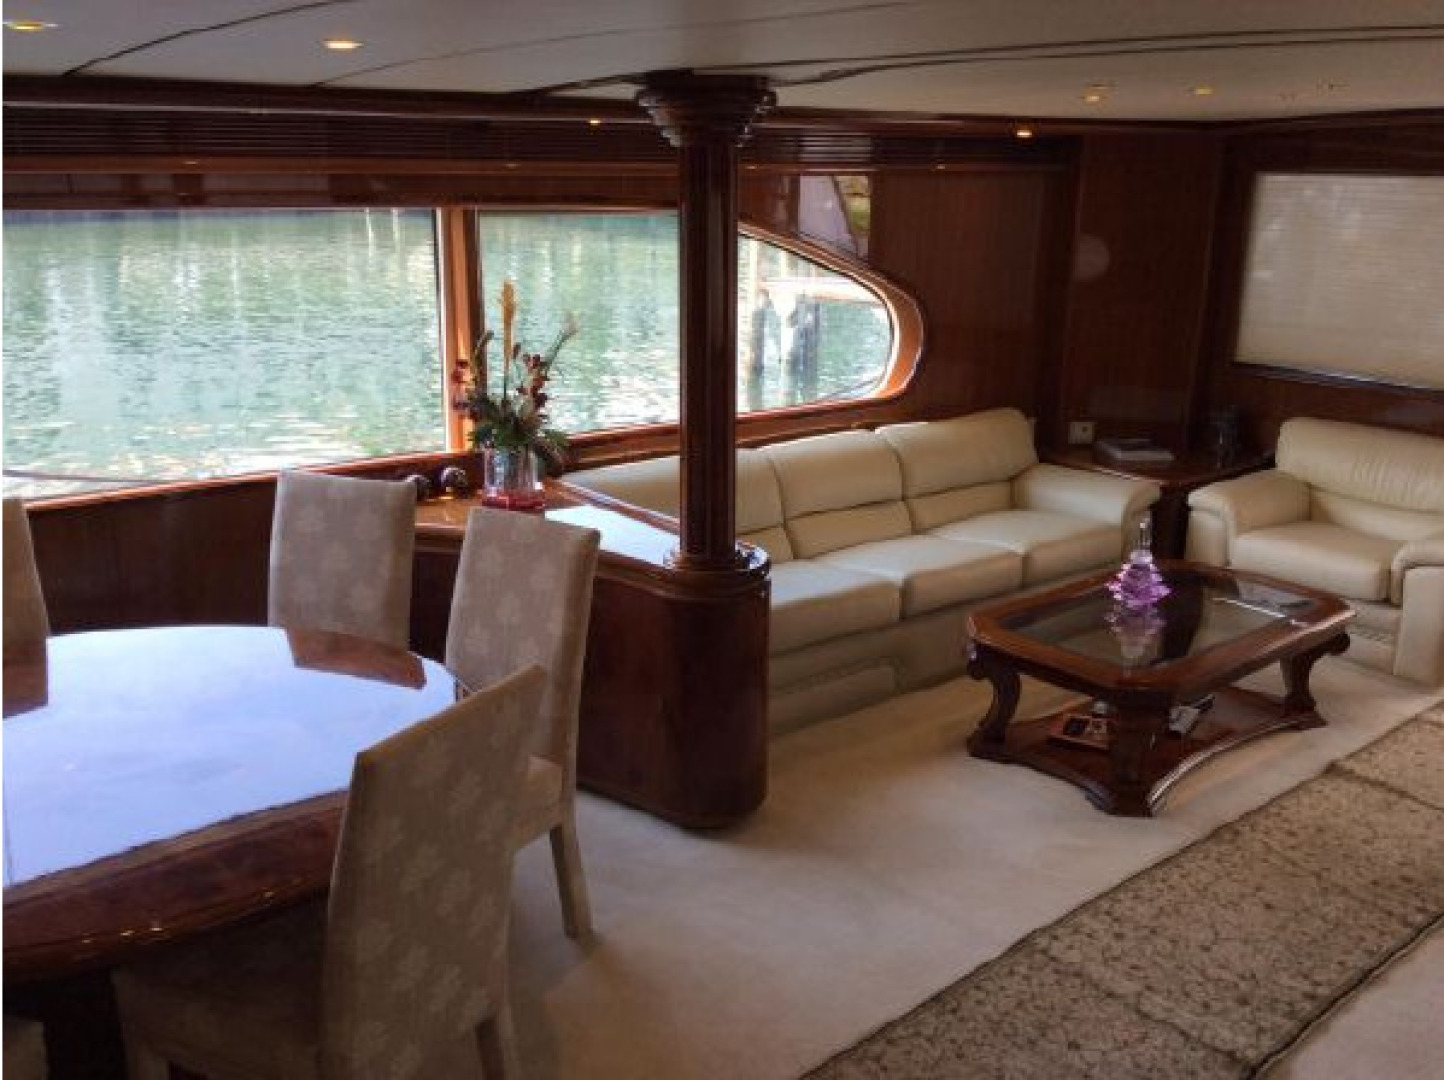 Tarrab-Tri Deck Motor yacht 1990 -Fort Lauderdale-Florida-United States-1551614 | Thumbnail